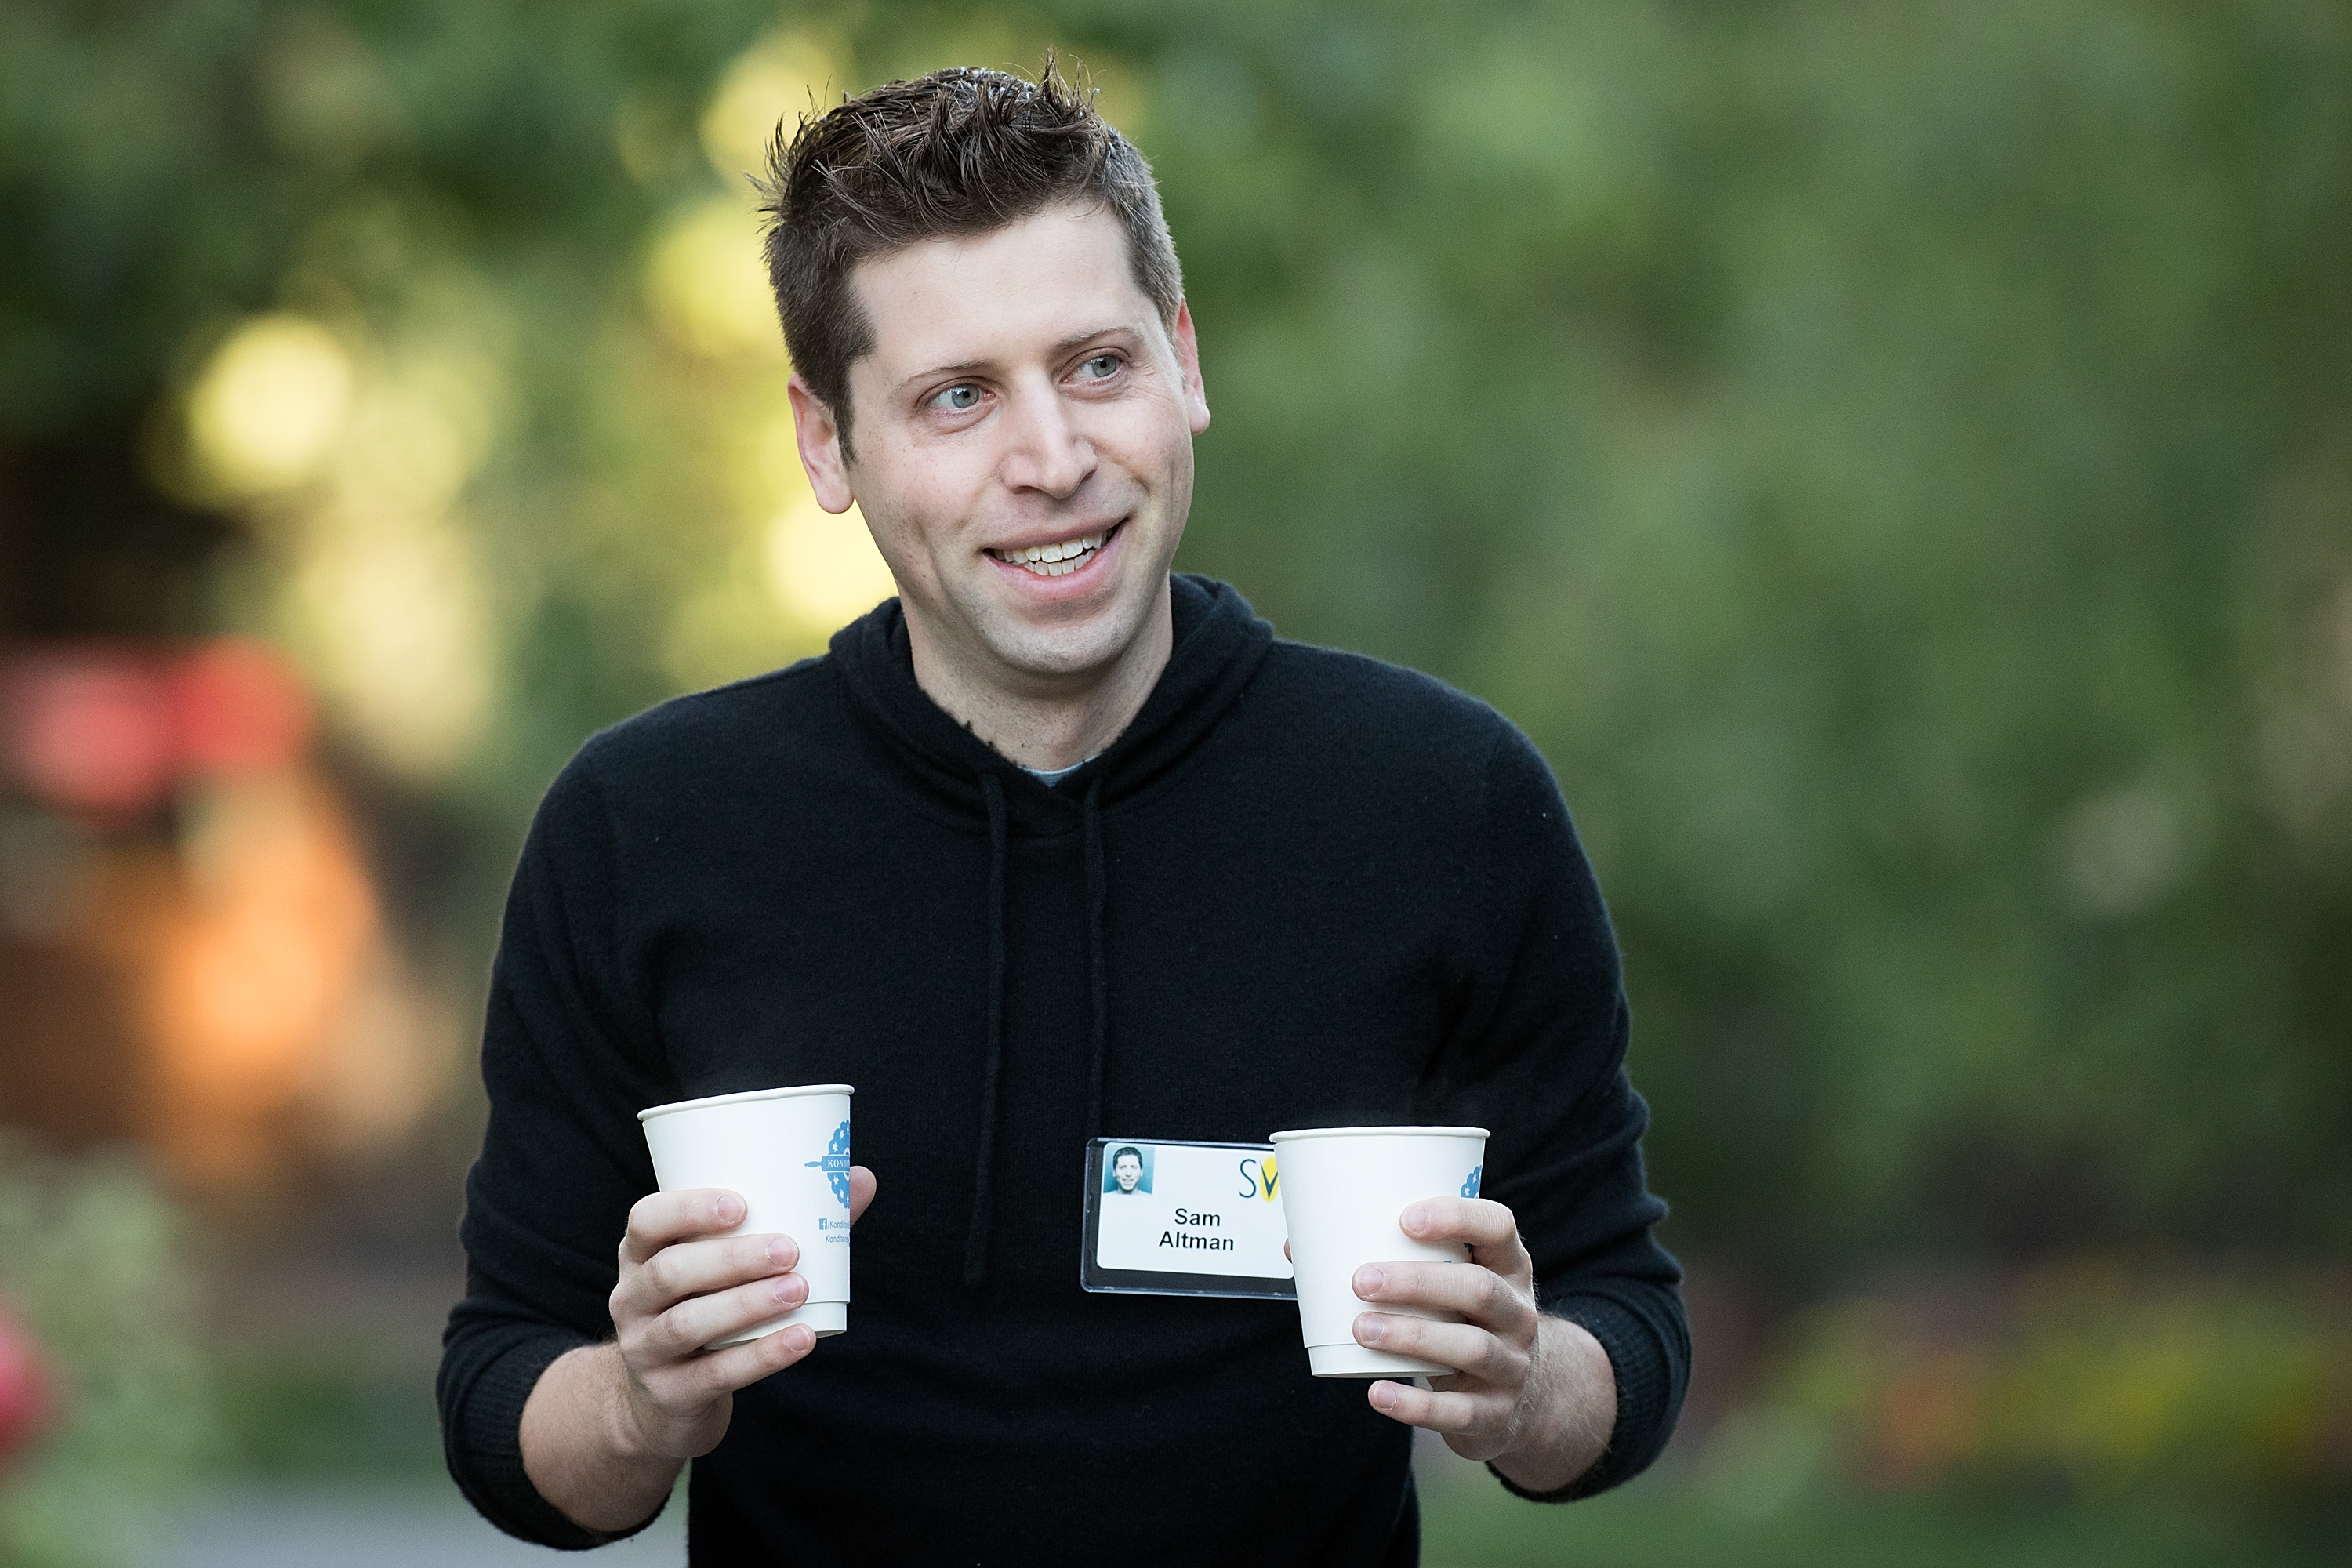 Y Combinator President Sam Altman holding two paper cups of coffee